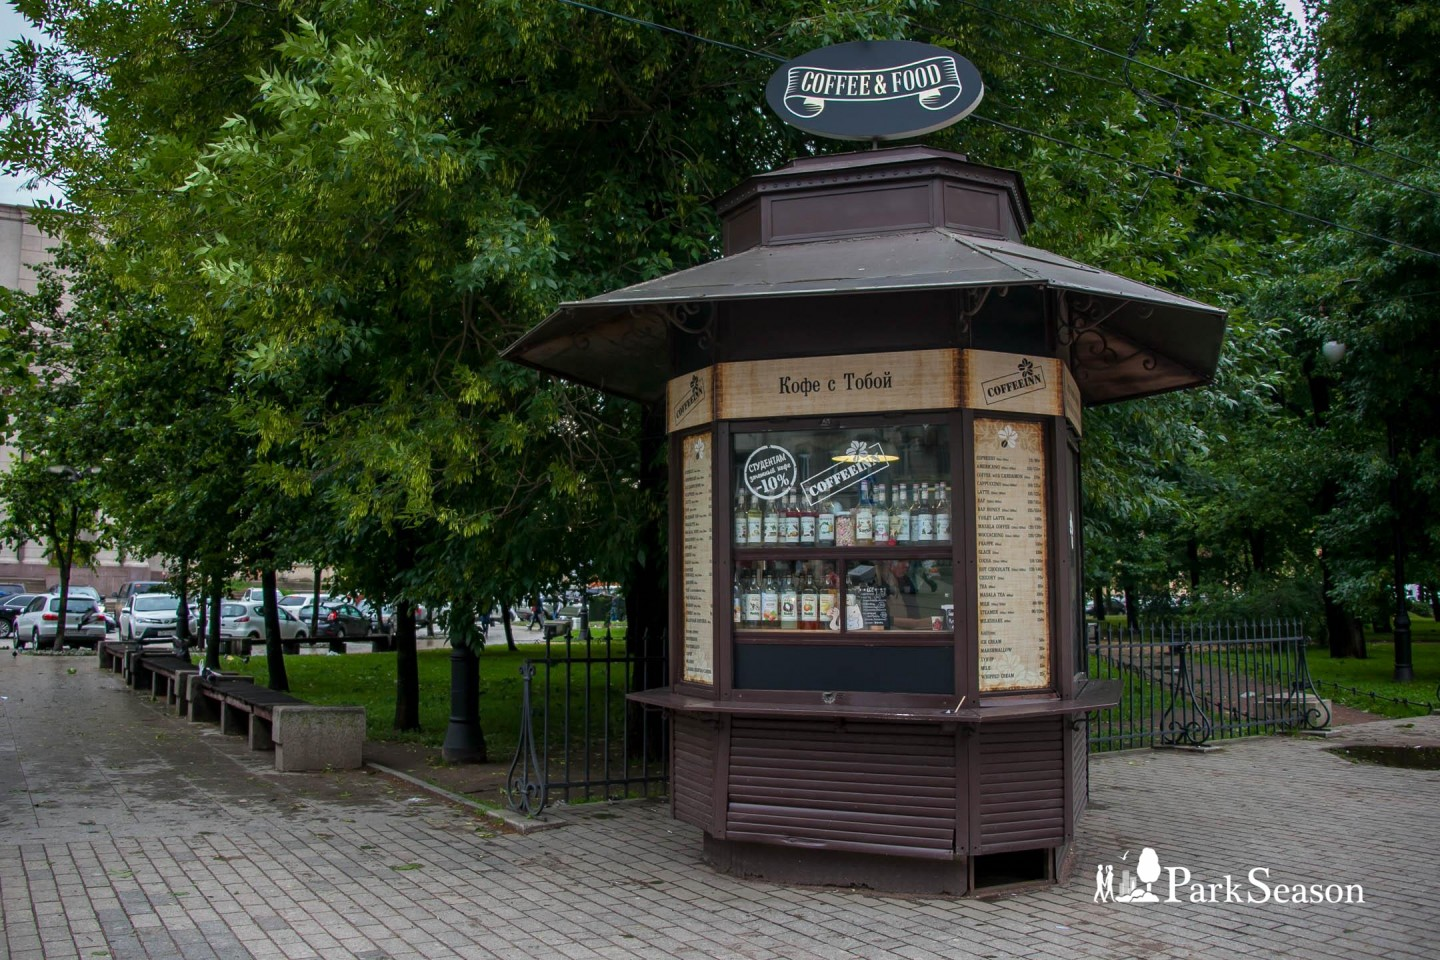 Киоск Coffee and food — ParkSeason